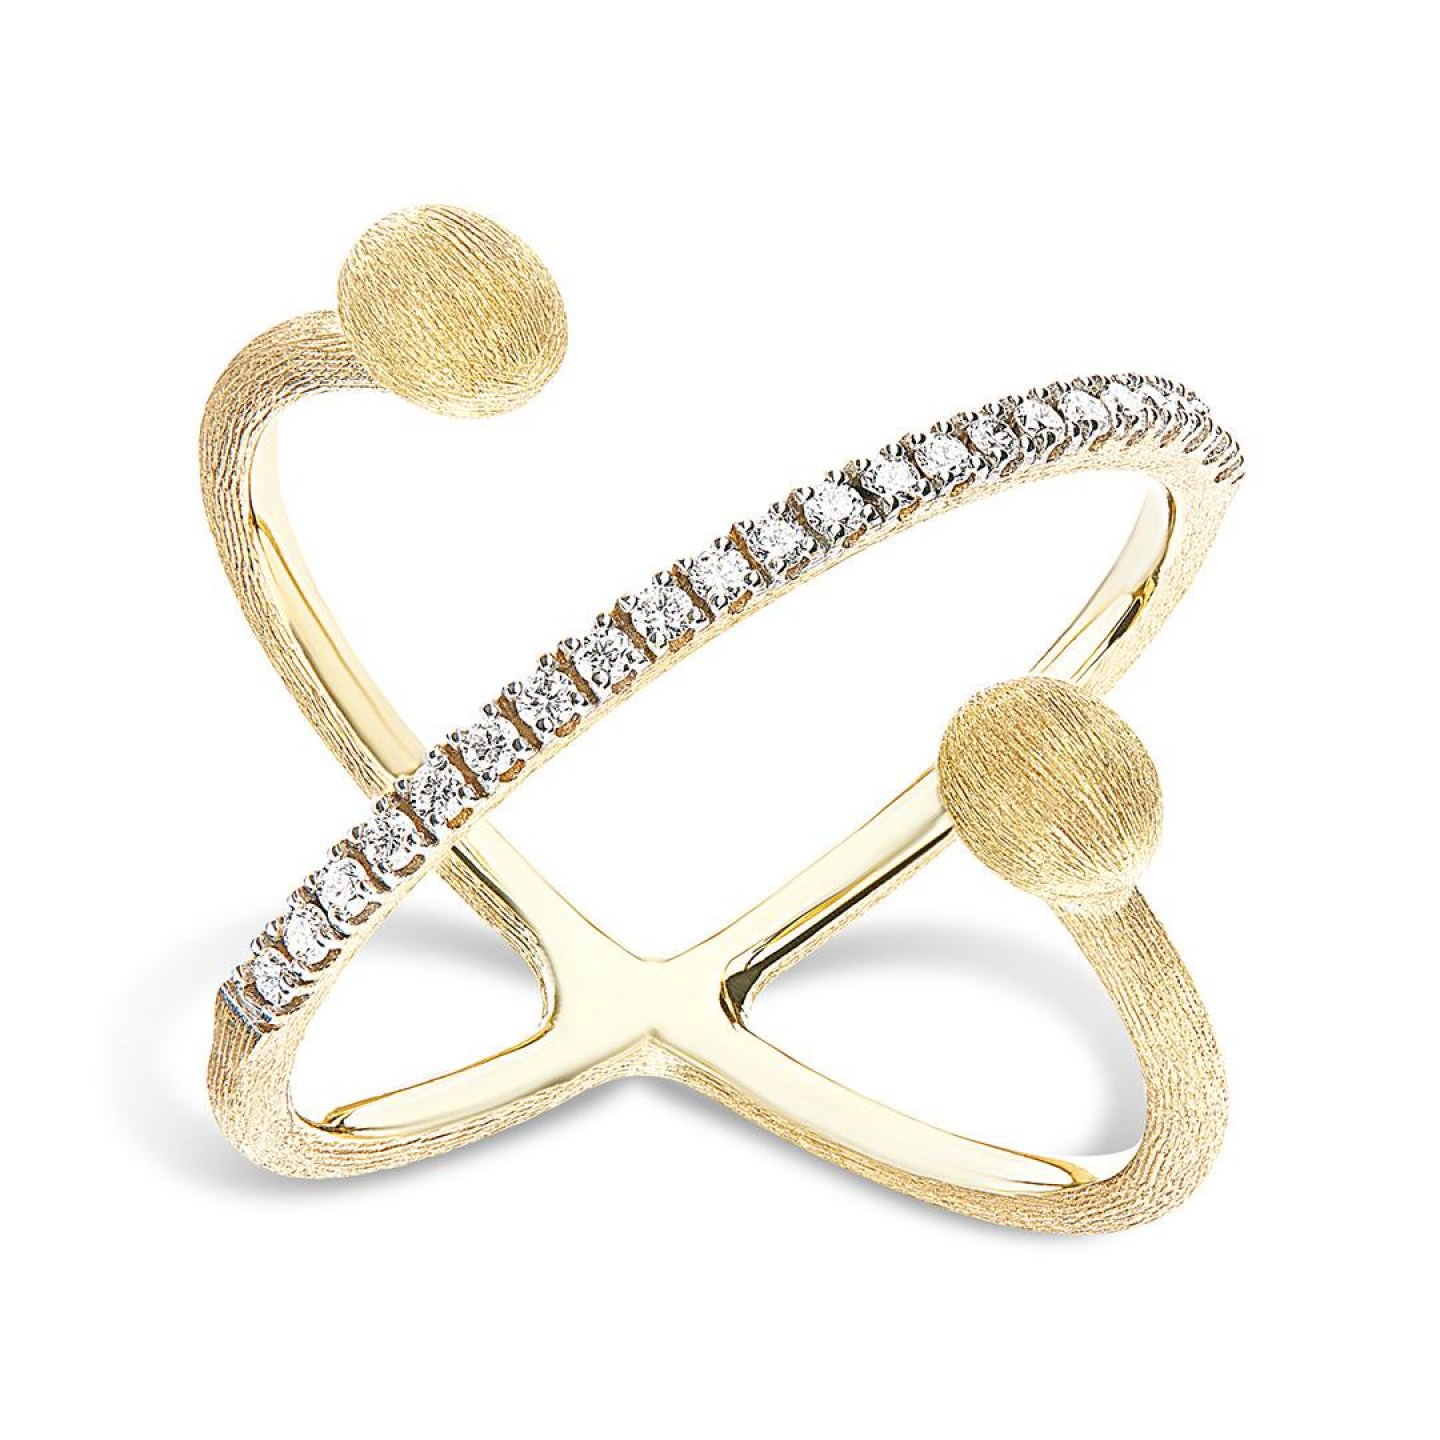 Nanis, Dancing in the Rain rings in yellow gold K18 with diamonds, NaniR4